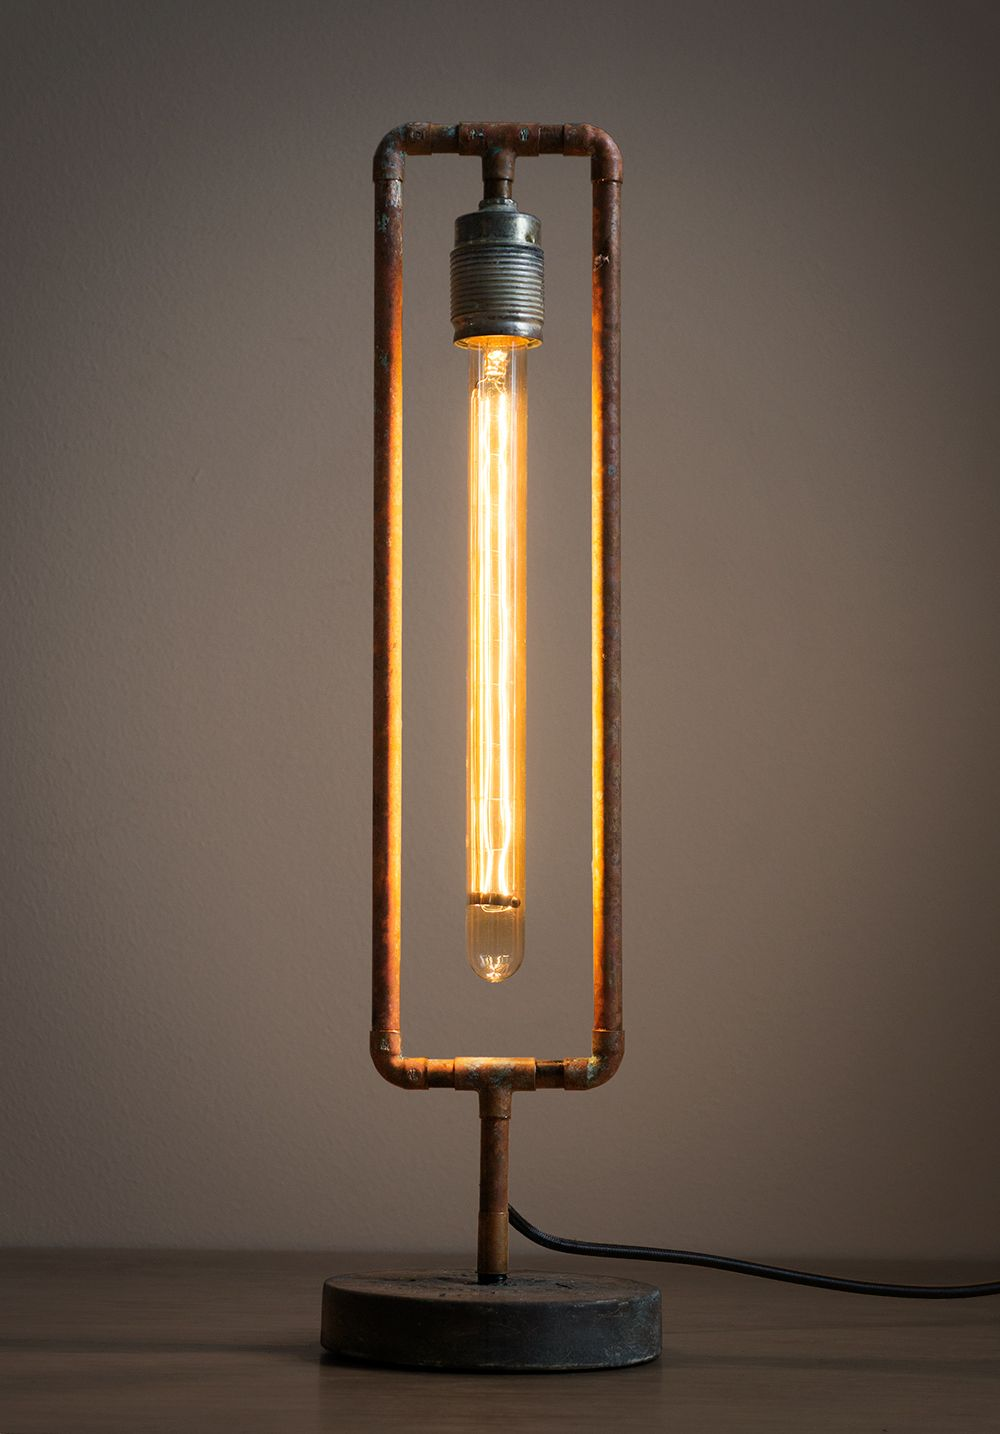 diy pipe lighting. this lamp is build from brass pipes and a 30 cm long light bulb diy pipe lighting